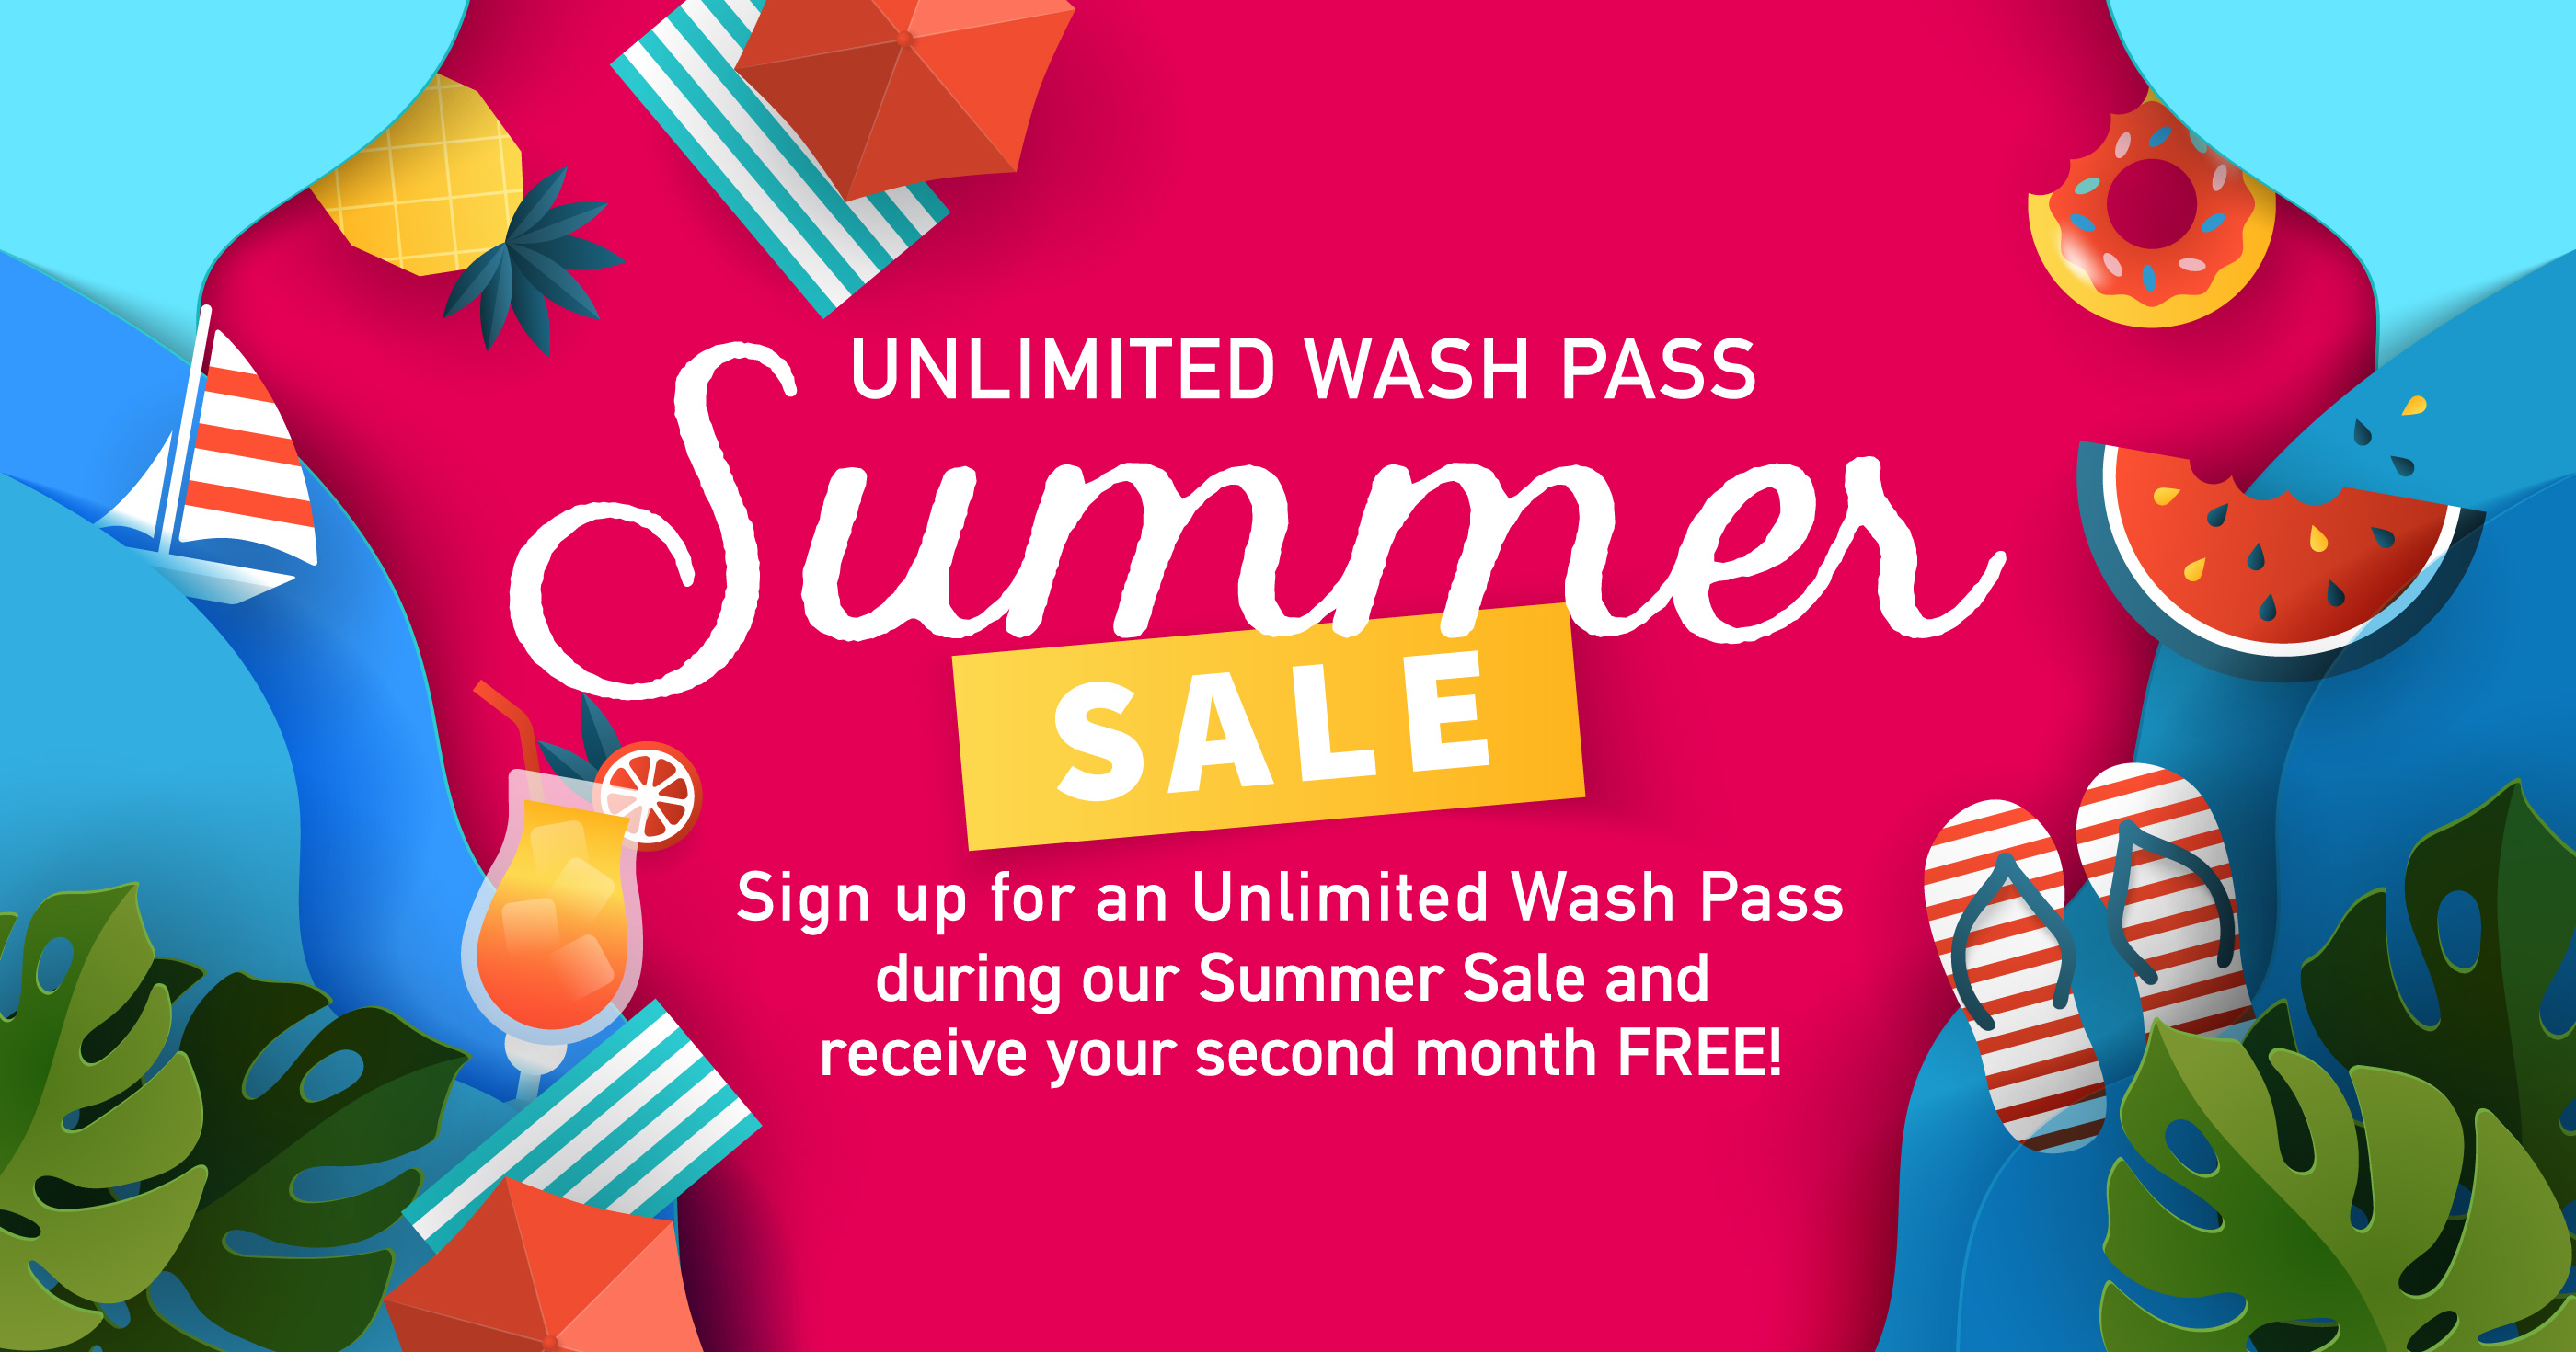 Unlimited Wash Pass - Summer Sale